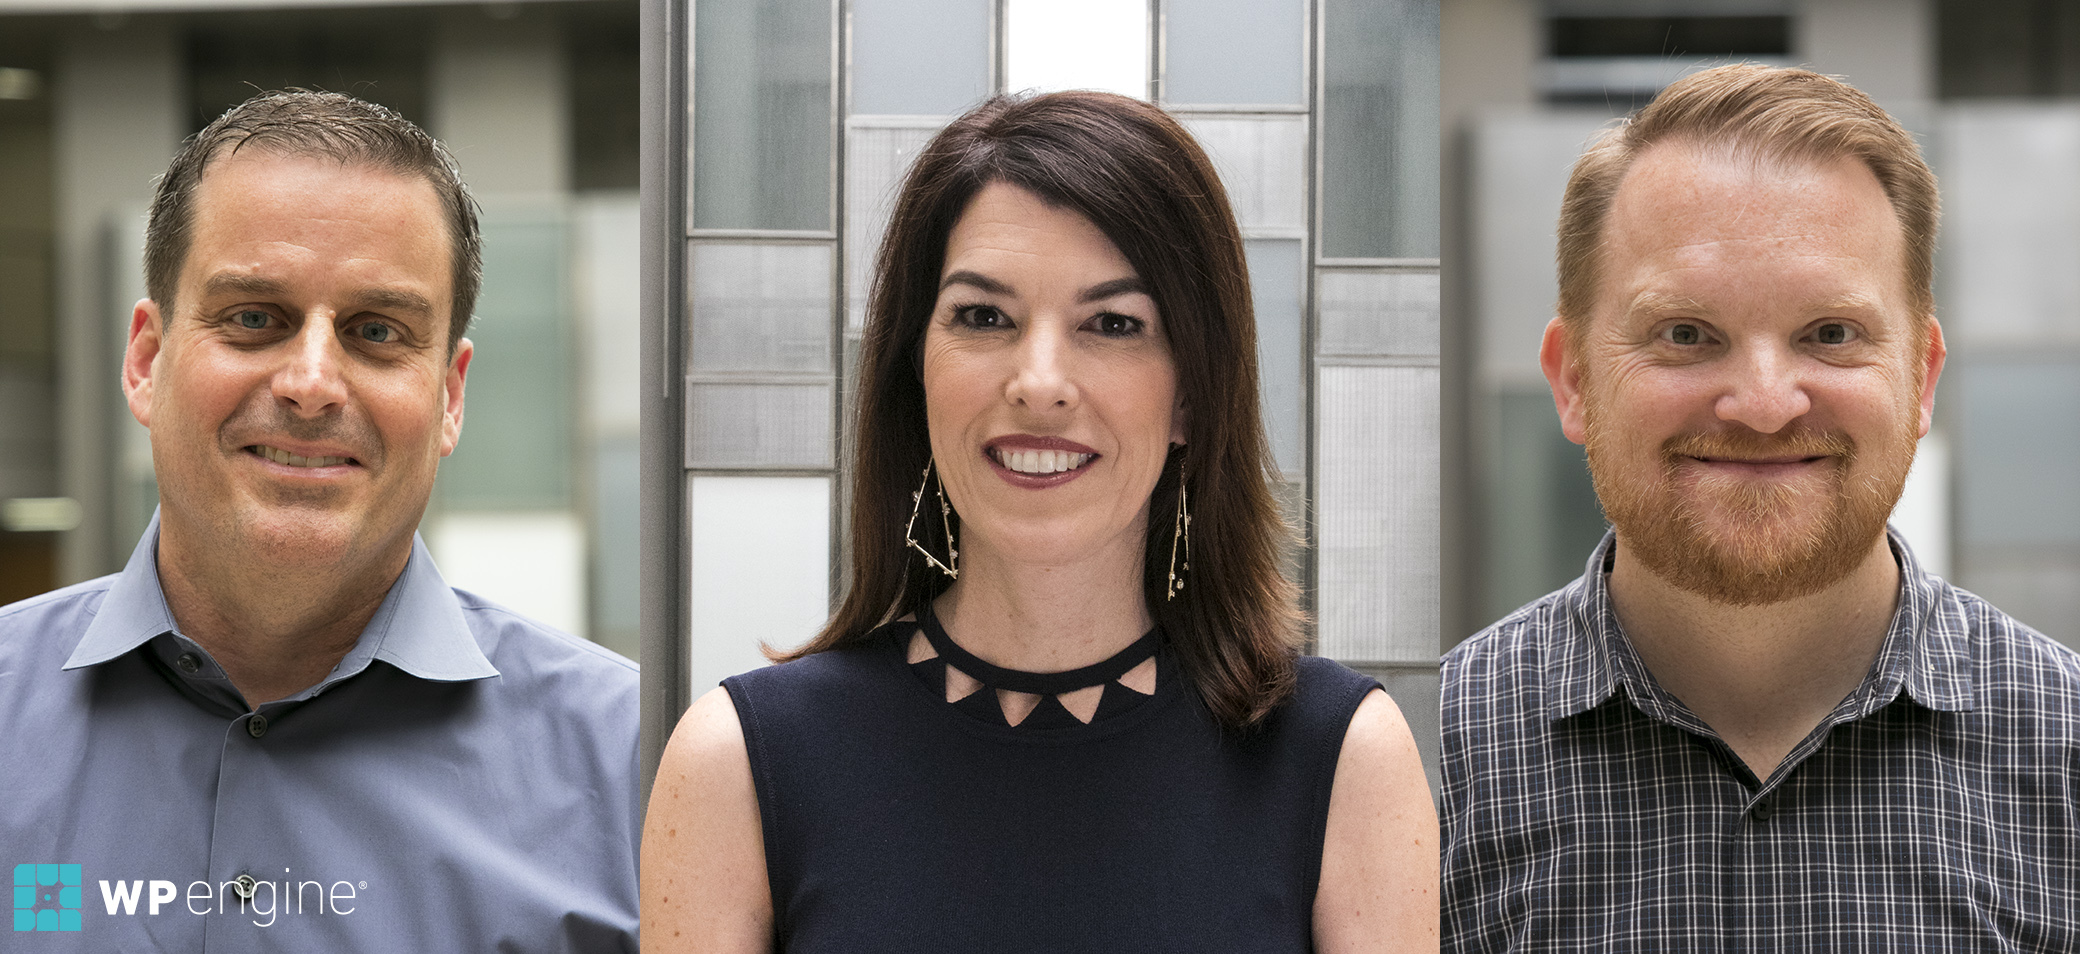 WP Engine Promotes Tina Dobie to Chief Customer Officer; David Brolsma to Chief Financial Officer